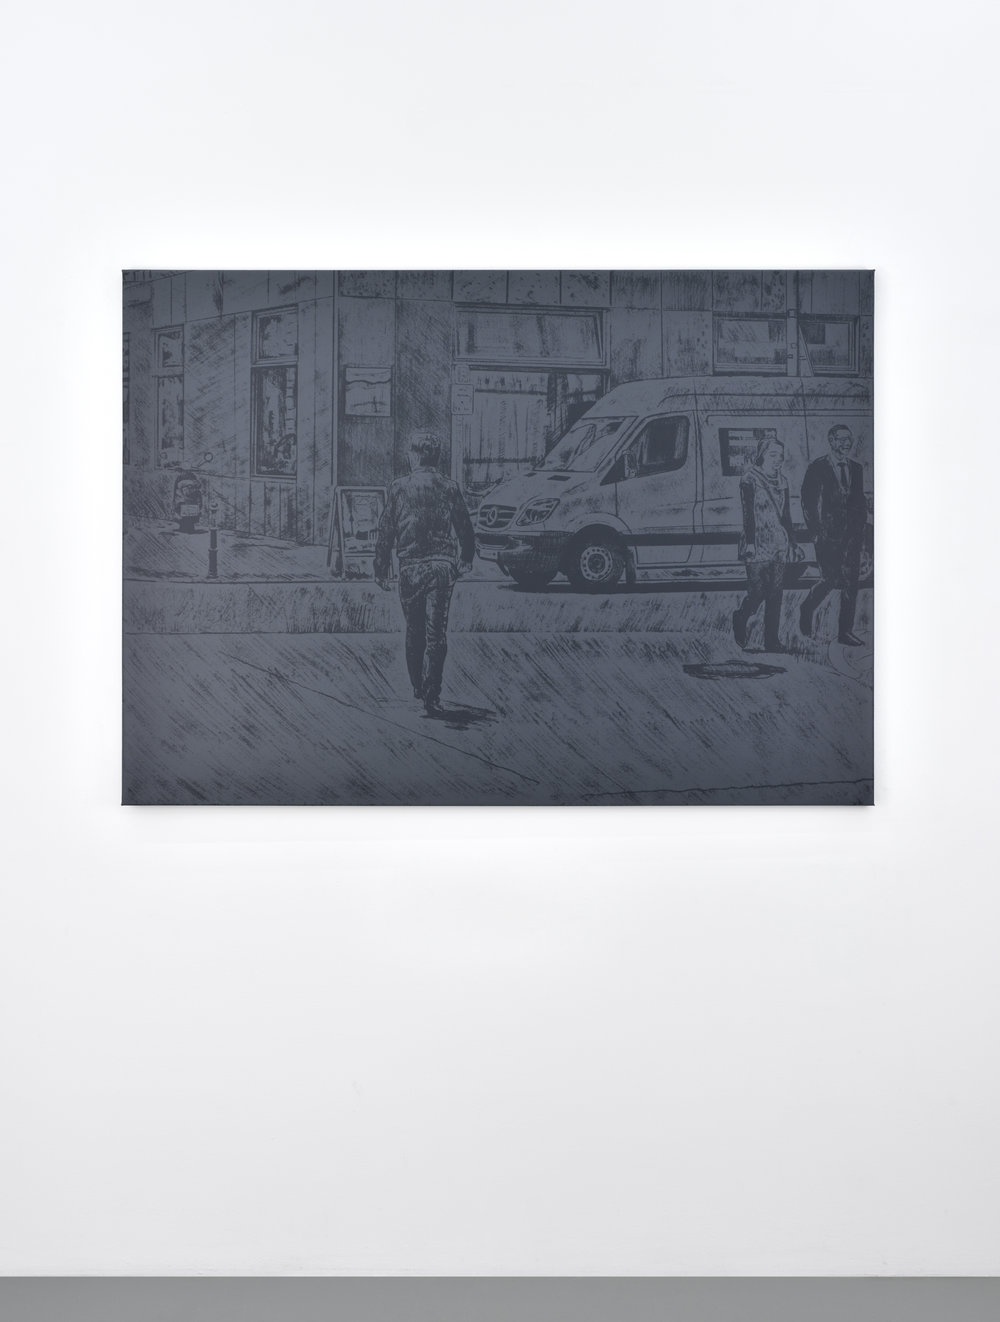 Untitled (van), 2017 silkscreen on canvas 106,7 x 149,2 cm - 42 x 58 3/4 inches